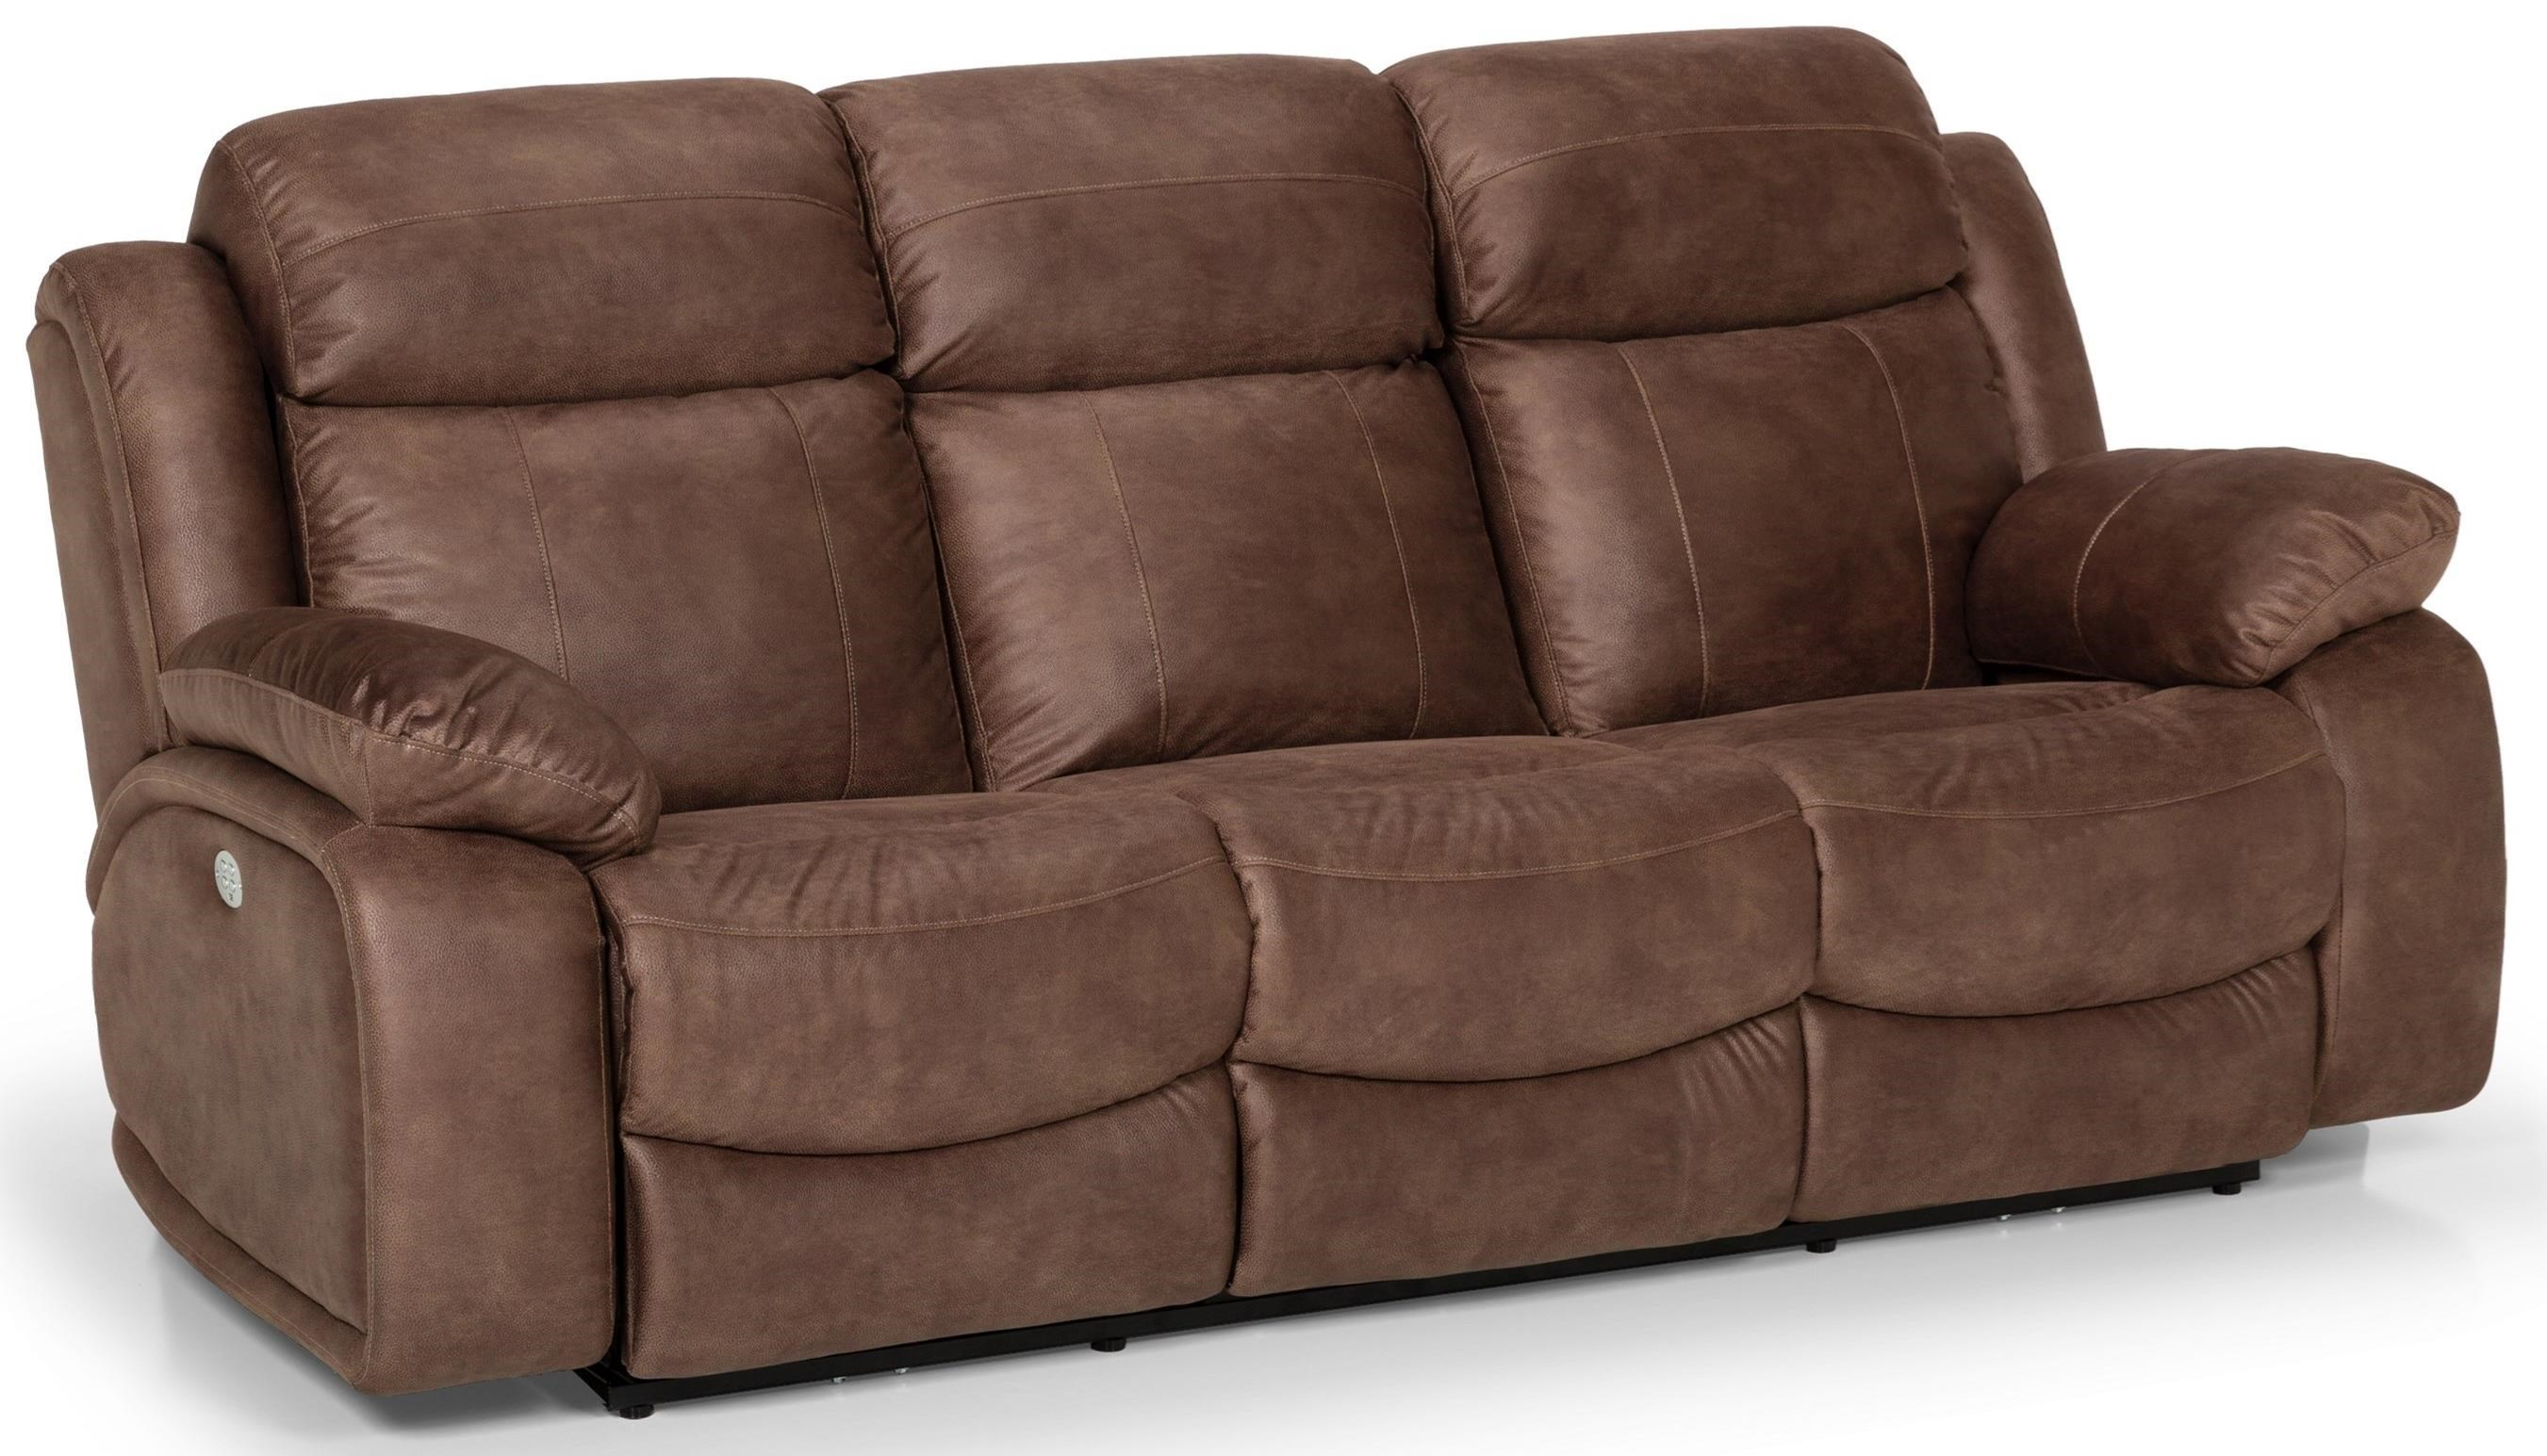 853 Dual Reclining Power Sofa w/ Pwr Head & Lumb by Stanton at Rife's Home Furniture